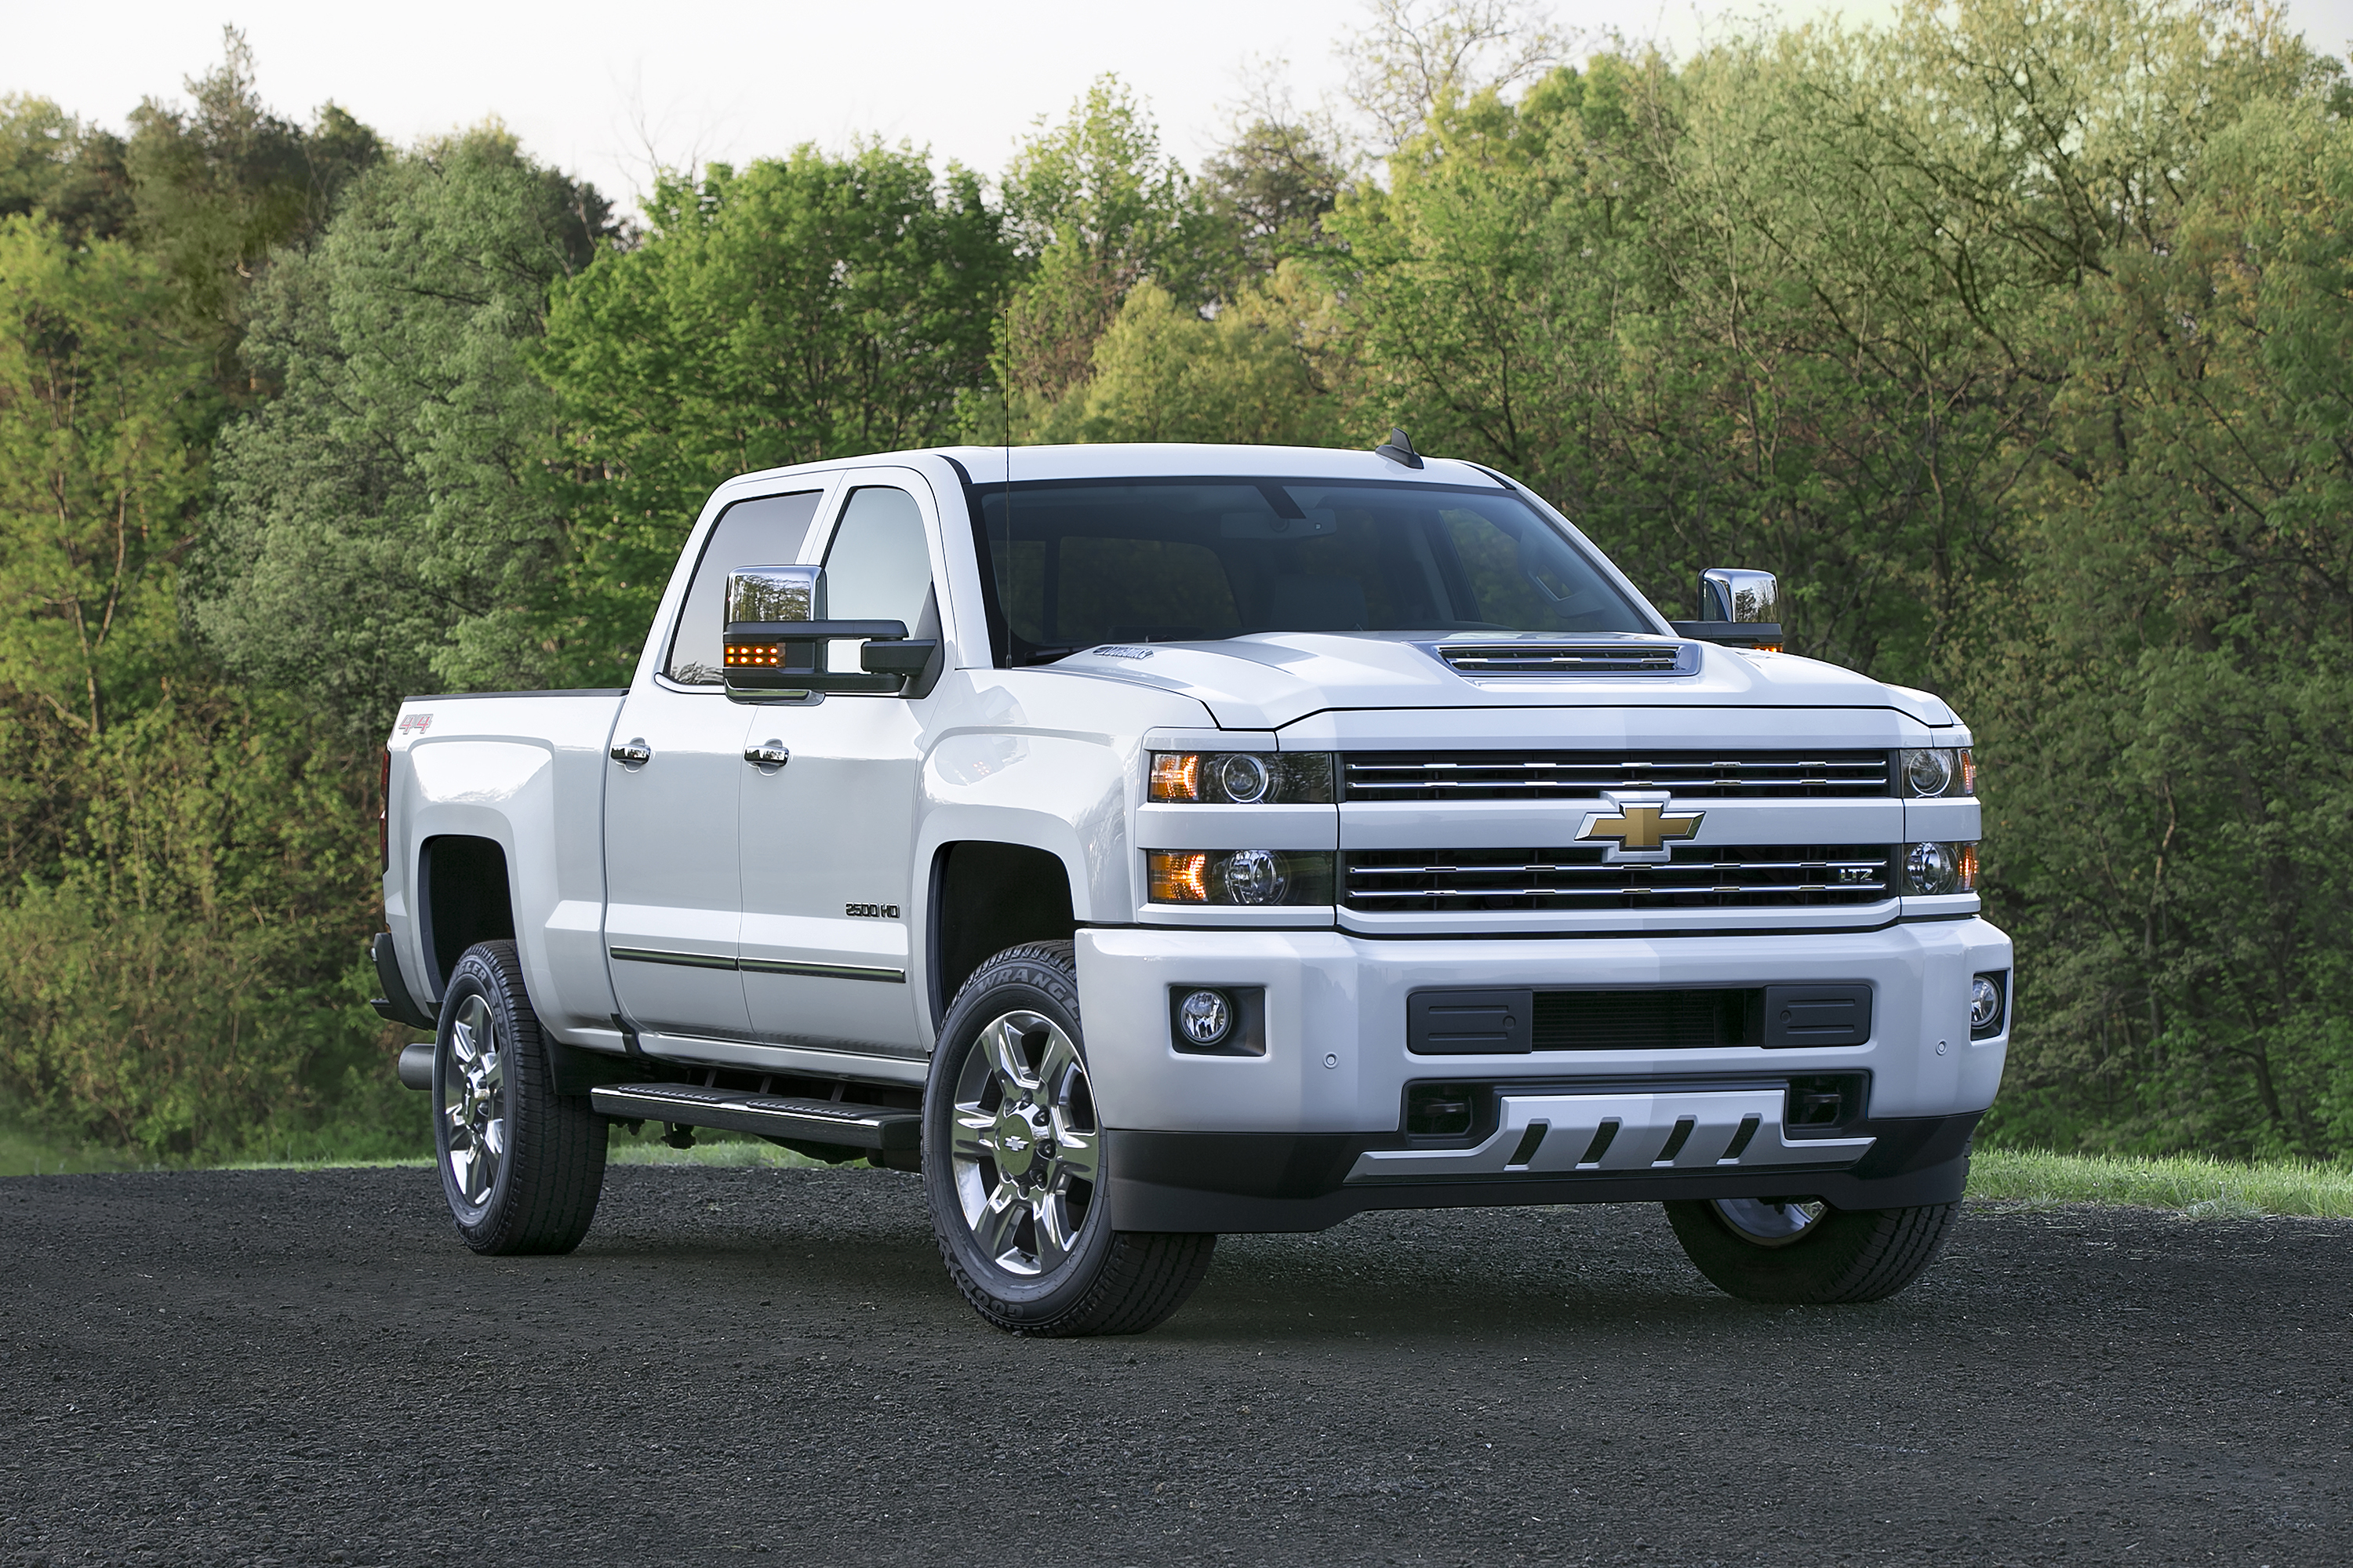 chevrolet fresh gmc diagram conversion diagrams hd silverado chevy wiring new system coilover of